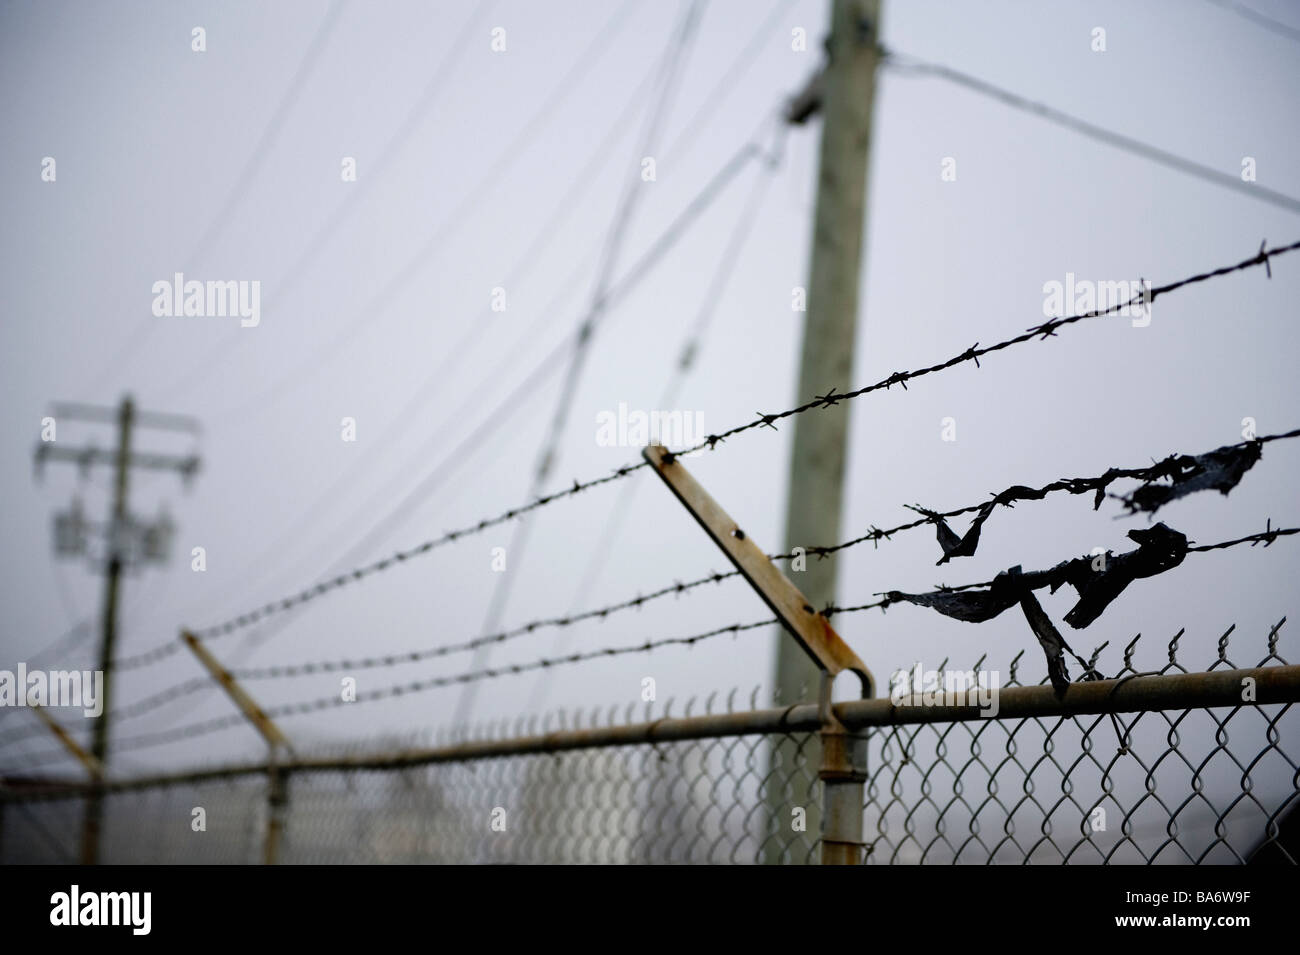 Scraps of fabric caught on a barbed wire fence - Stock Image